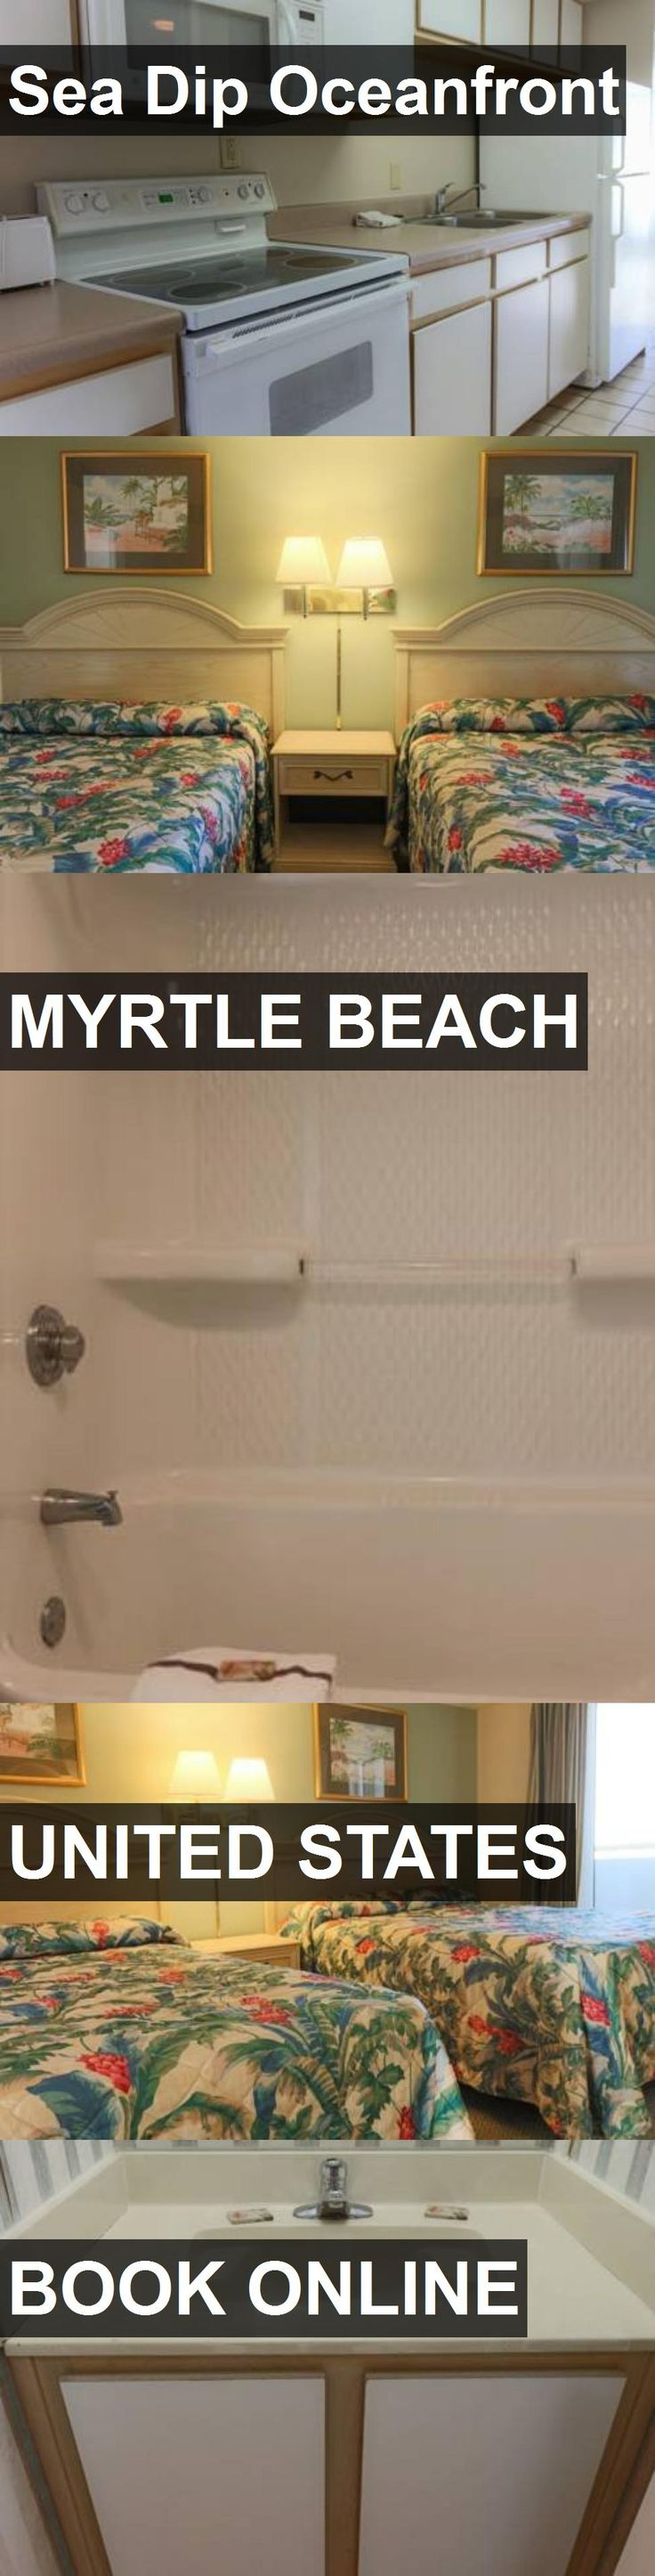 Hotel Sea Dip Oceanfront in Myrtle Beach, United States. For more information, photos, reviews and best prices please follow the link. #UnitedStates #MyrtleBeach #SeaDipOceanfront #hotel #travel #vacation